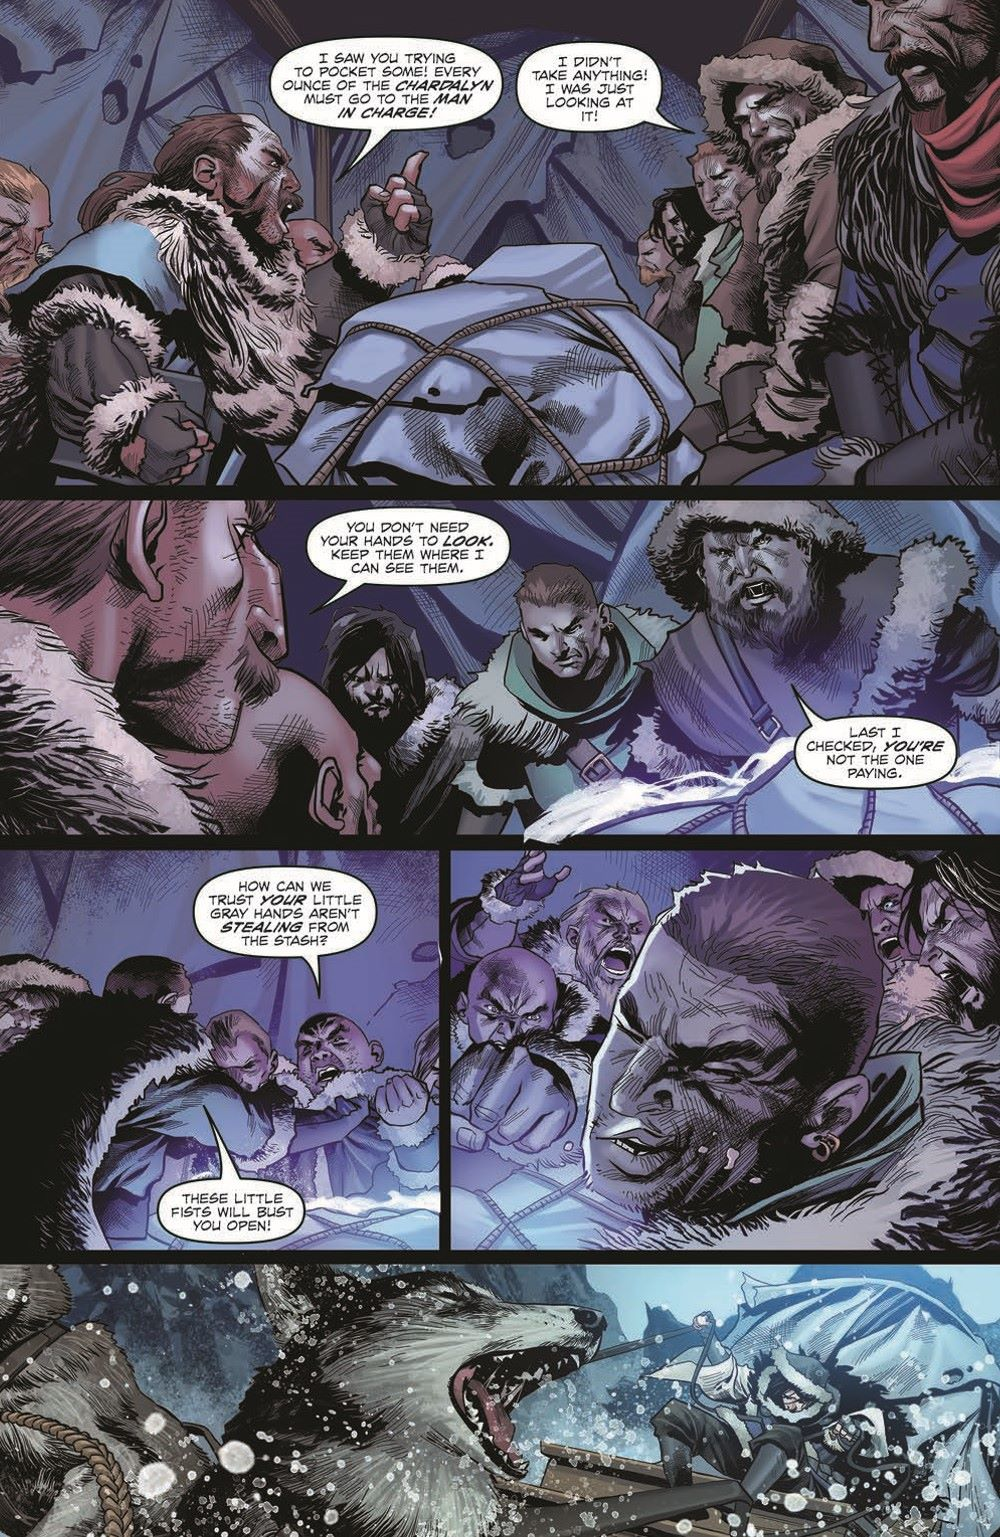 DD_ATSOTW01-pr-4 ComicList Previews: DUNGEONS AND DRAGONS AT THE SPINE OF THE WORLD #1 (OF 4)